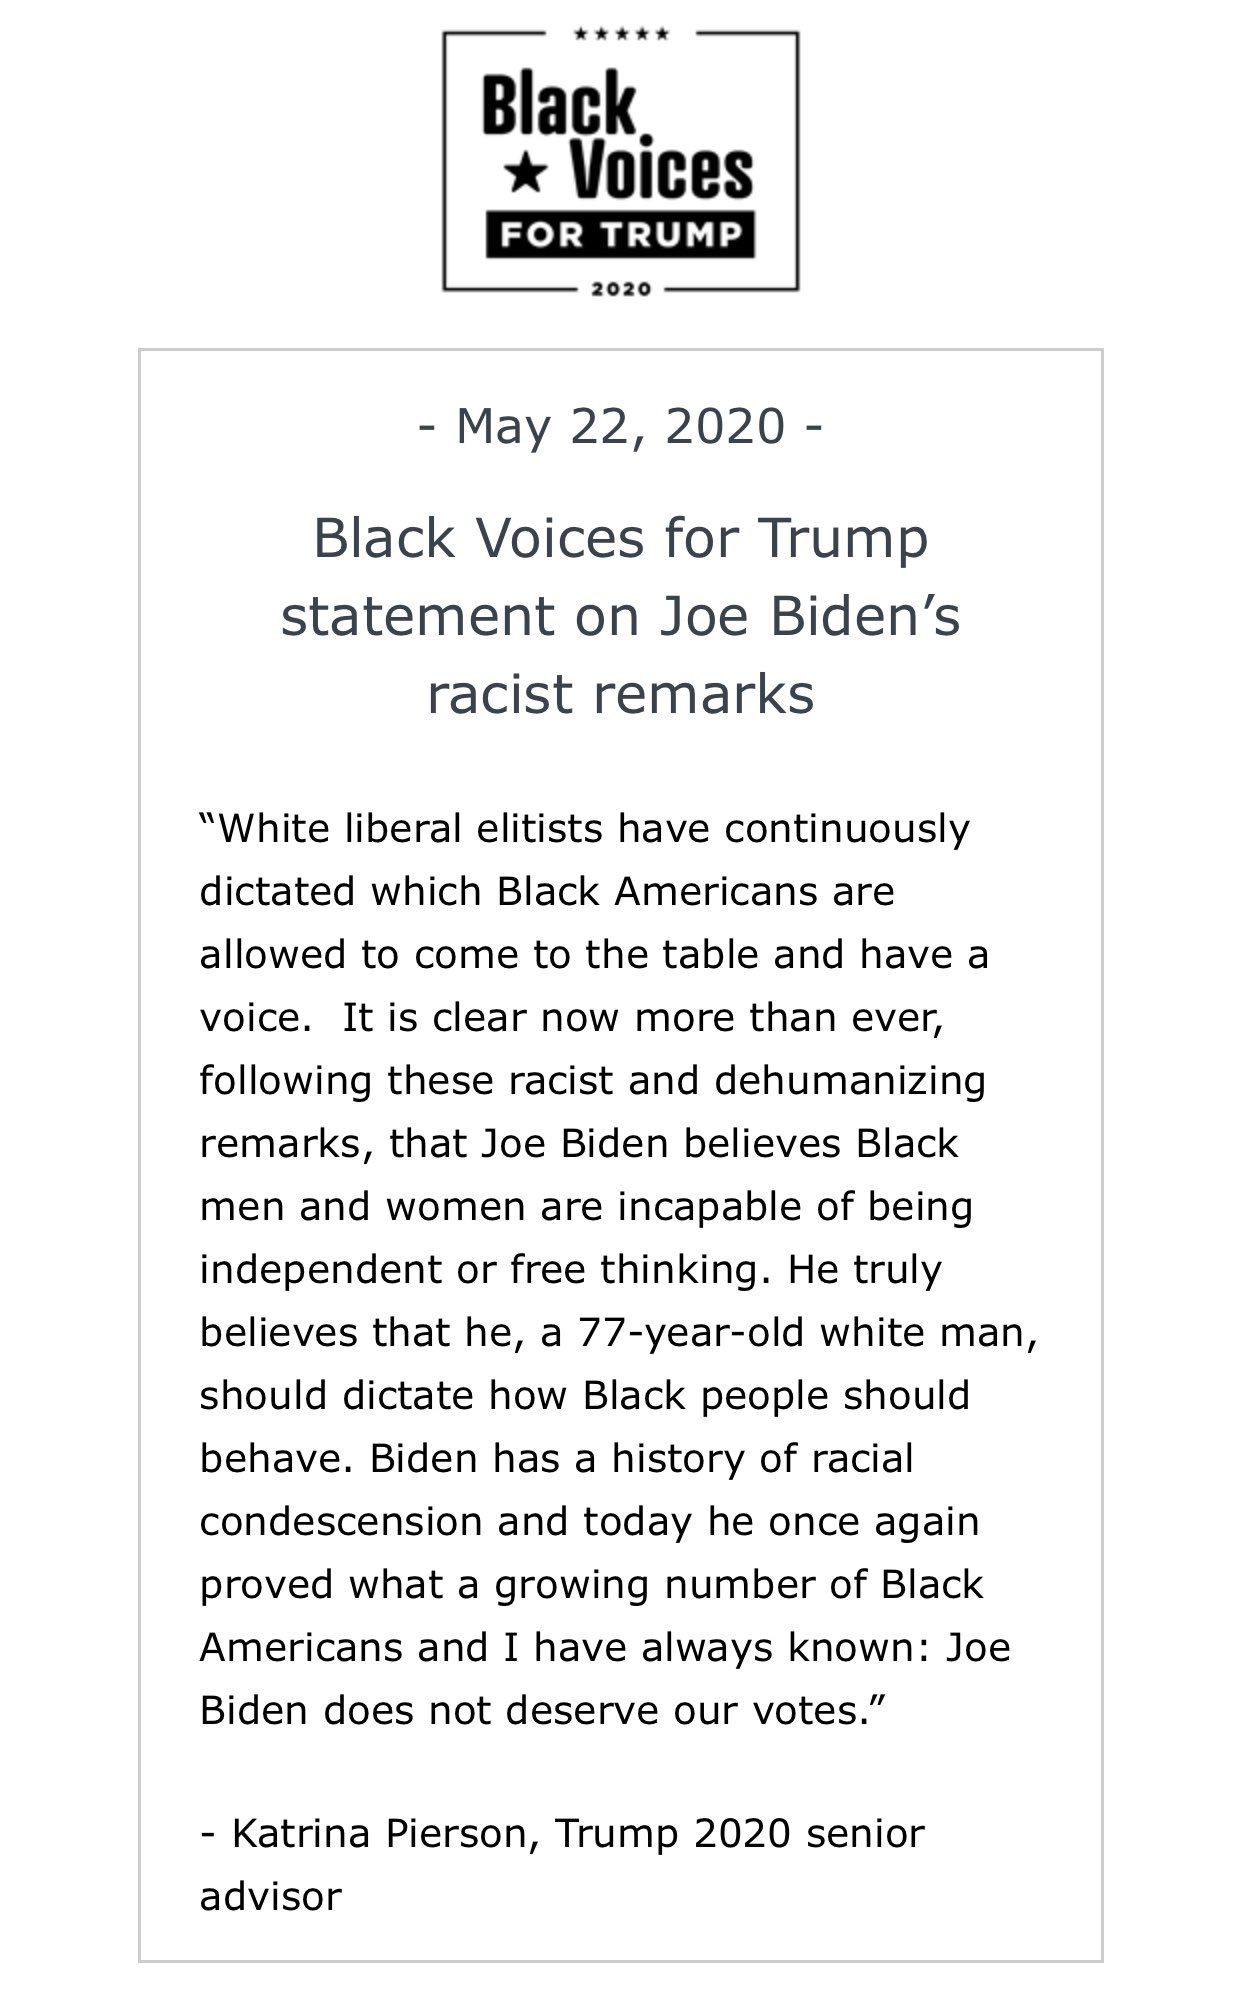 otlXqNH2_bigger BLACK CONSERVATIVES: JOE BIDEN'S 'YOU AIN'T BLACK' COMMENT 'RACIST AND DEHUMANIZING' [your]NEWS